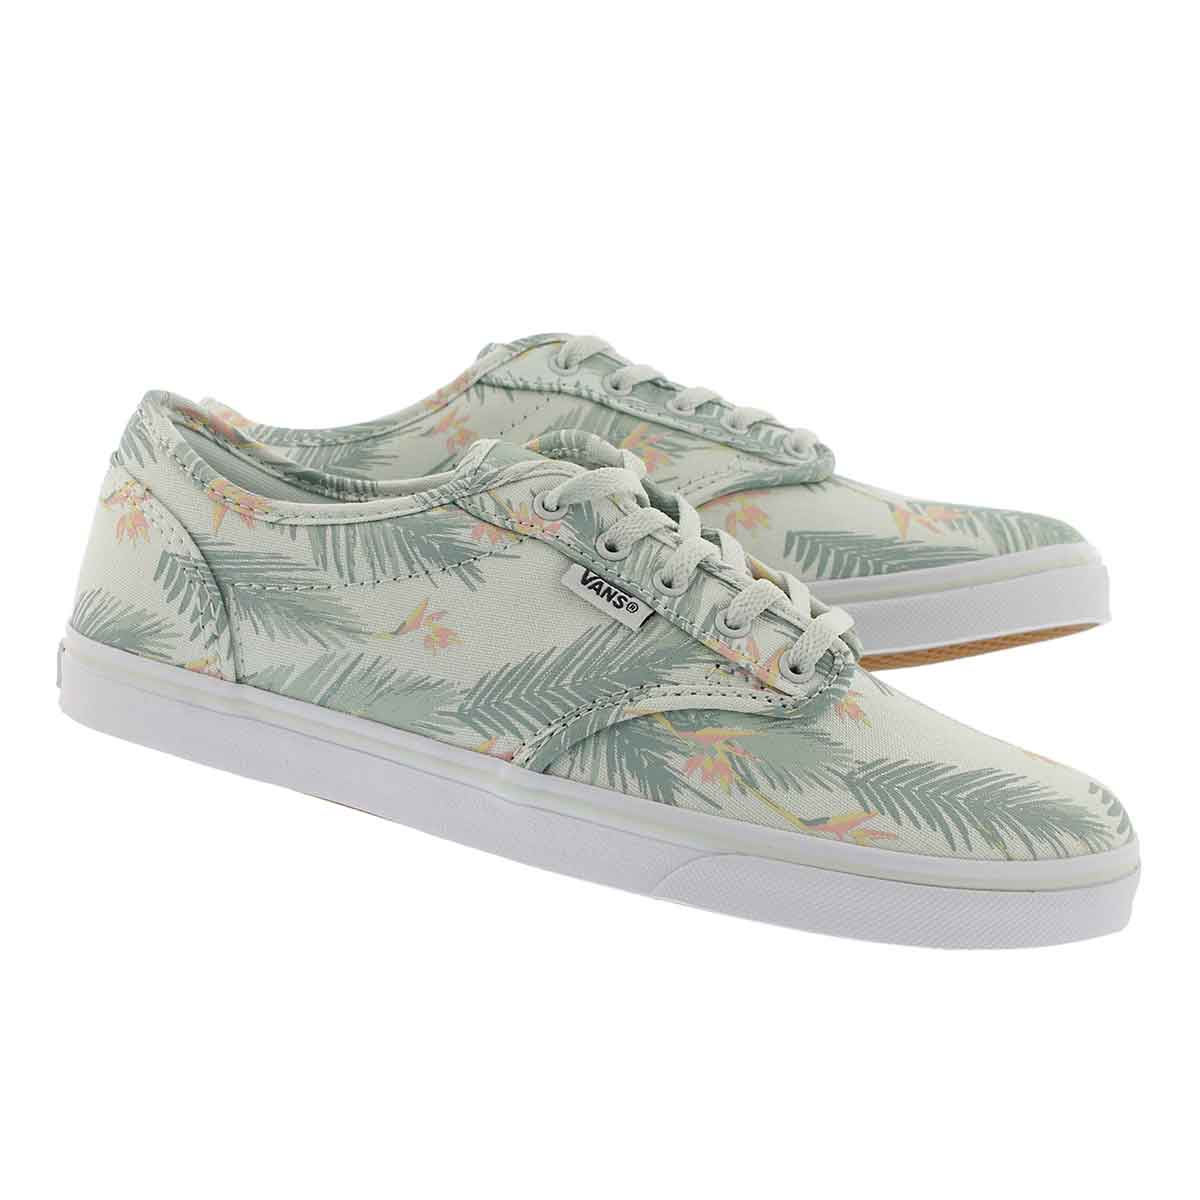 Lds Atwood Low tropical grn laceup snkr